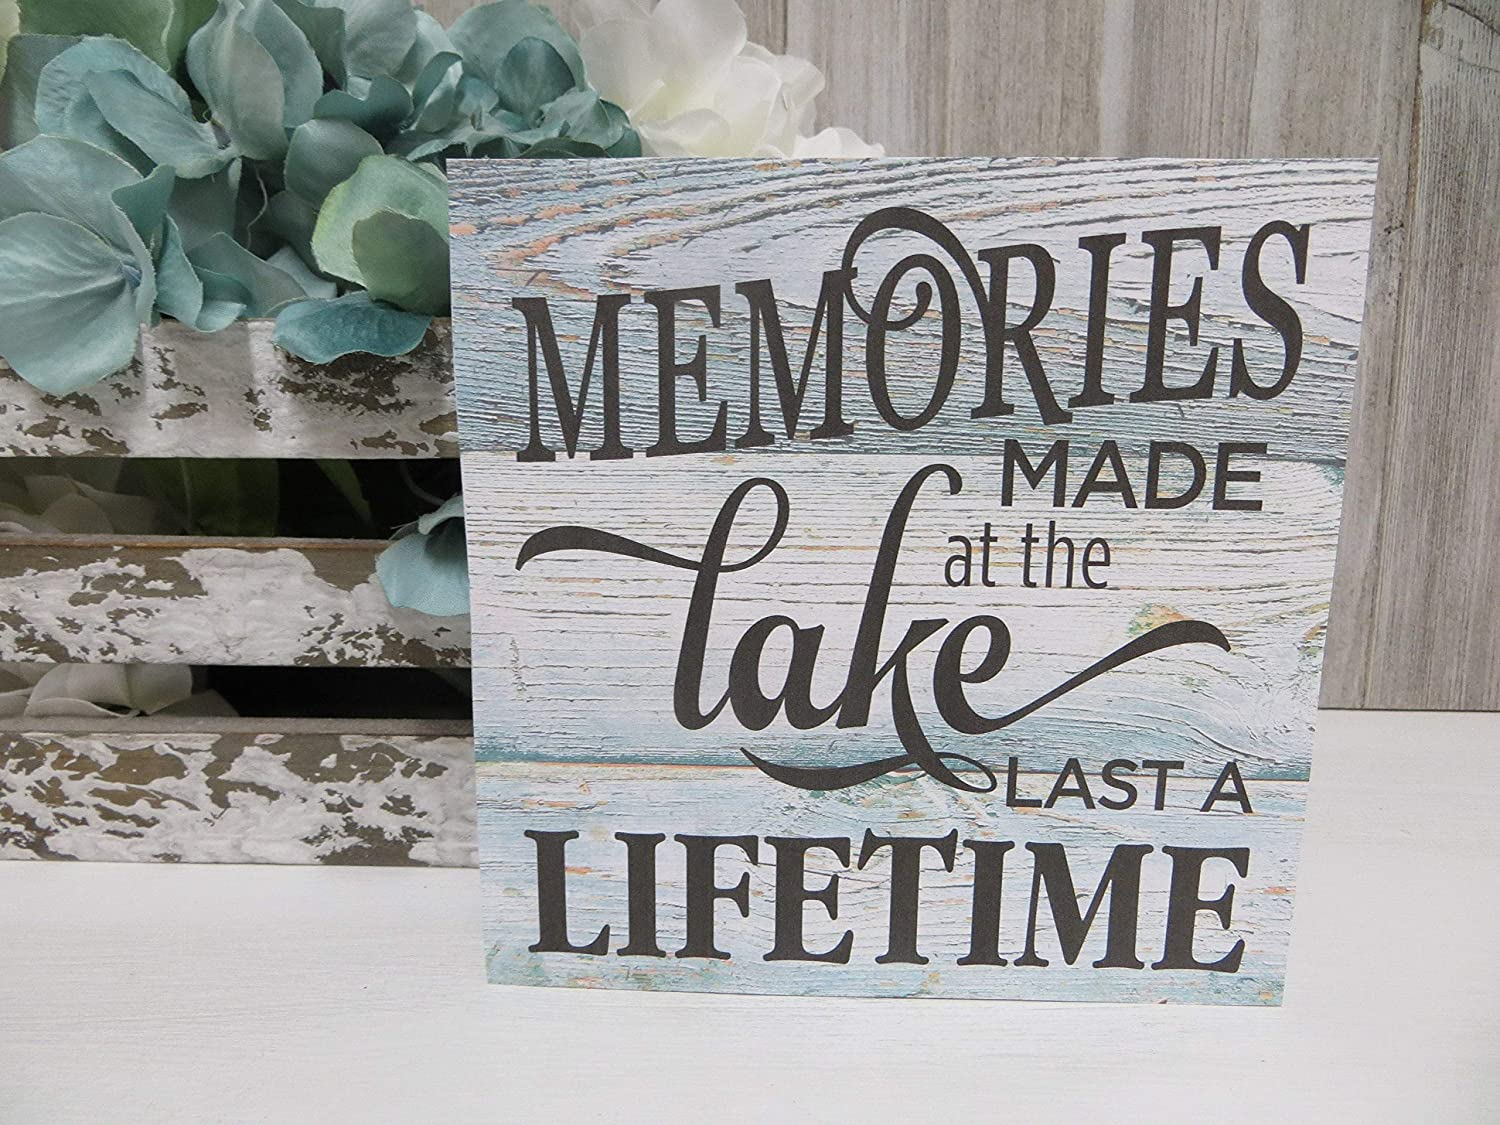 Rustic Wooden Plaque Wall Art Hanging Sign Wood Lake Sign, Memories at The Lake Last A Lifetime, Lake House Sign, Lake House Decor, Lake Lover Gift, Lake House Wood Sign 12